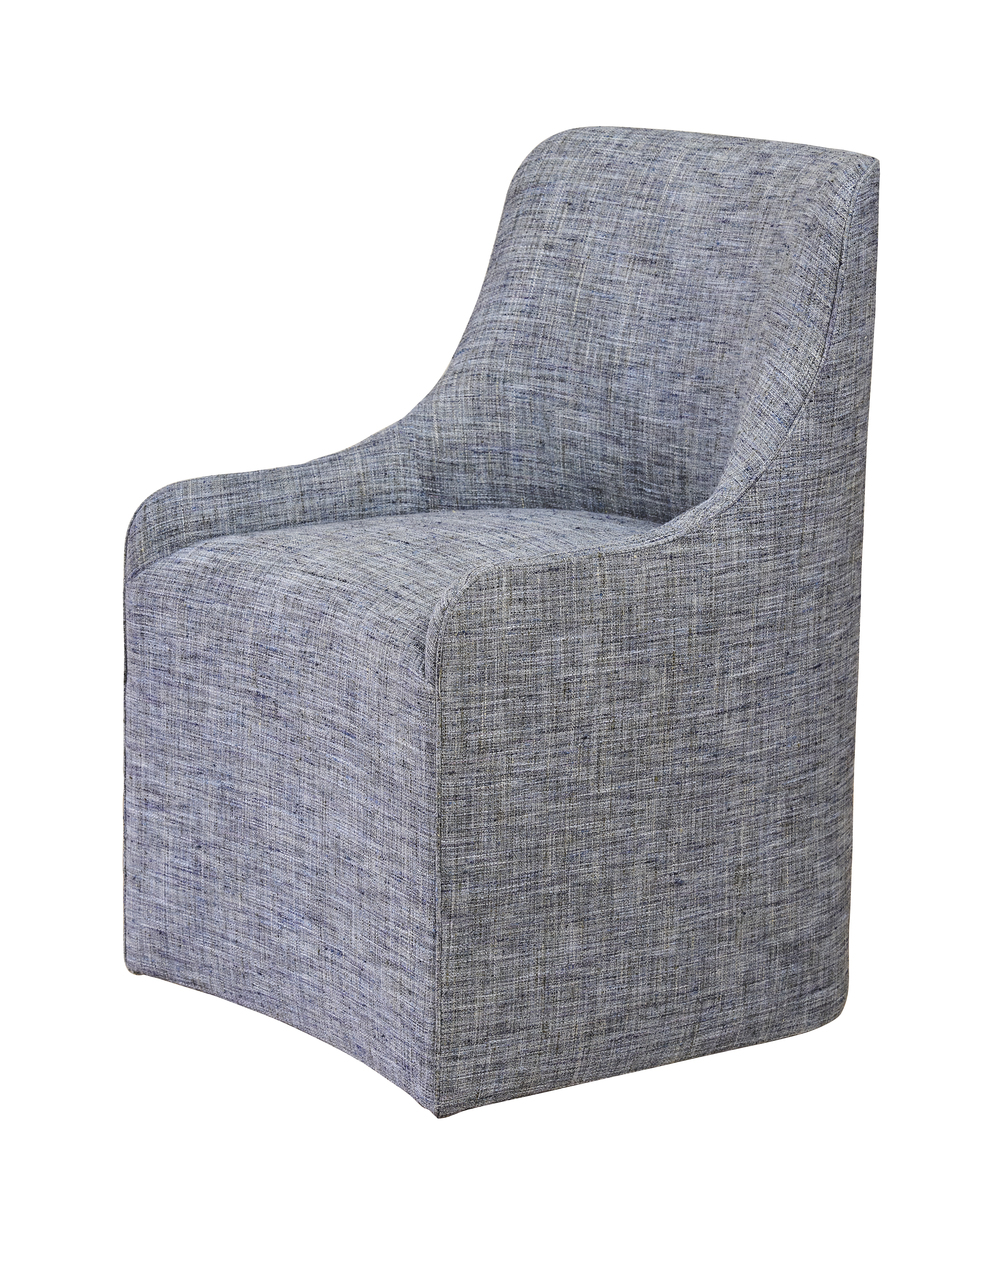 Designmaster Furniture - Southgate Castered Arm Chair